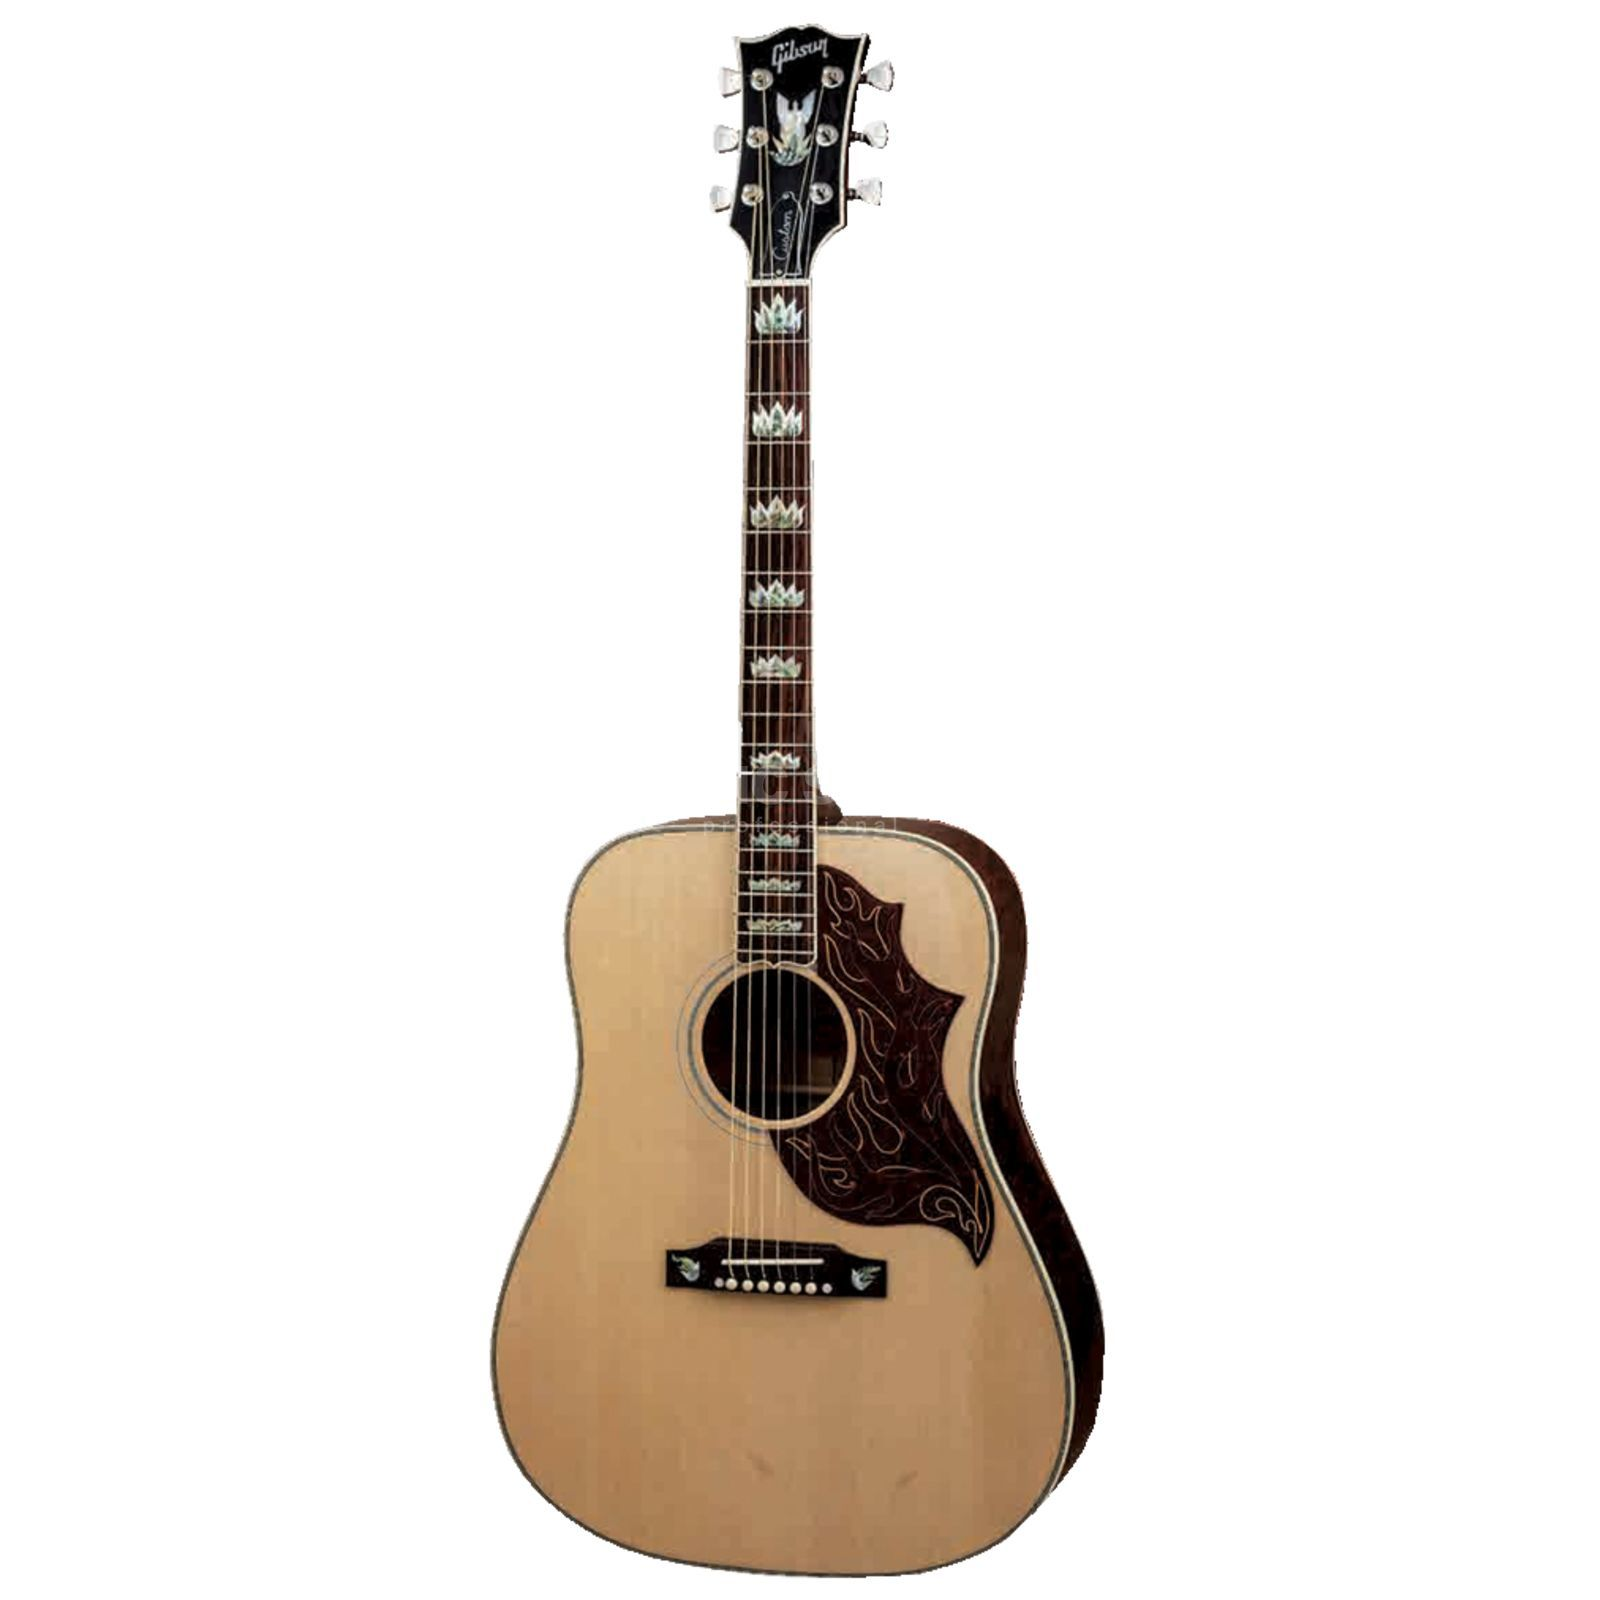 Gibson Hummingbird Firebird Limited Edition Product Image